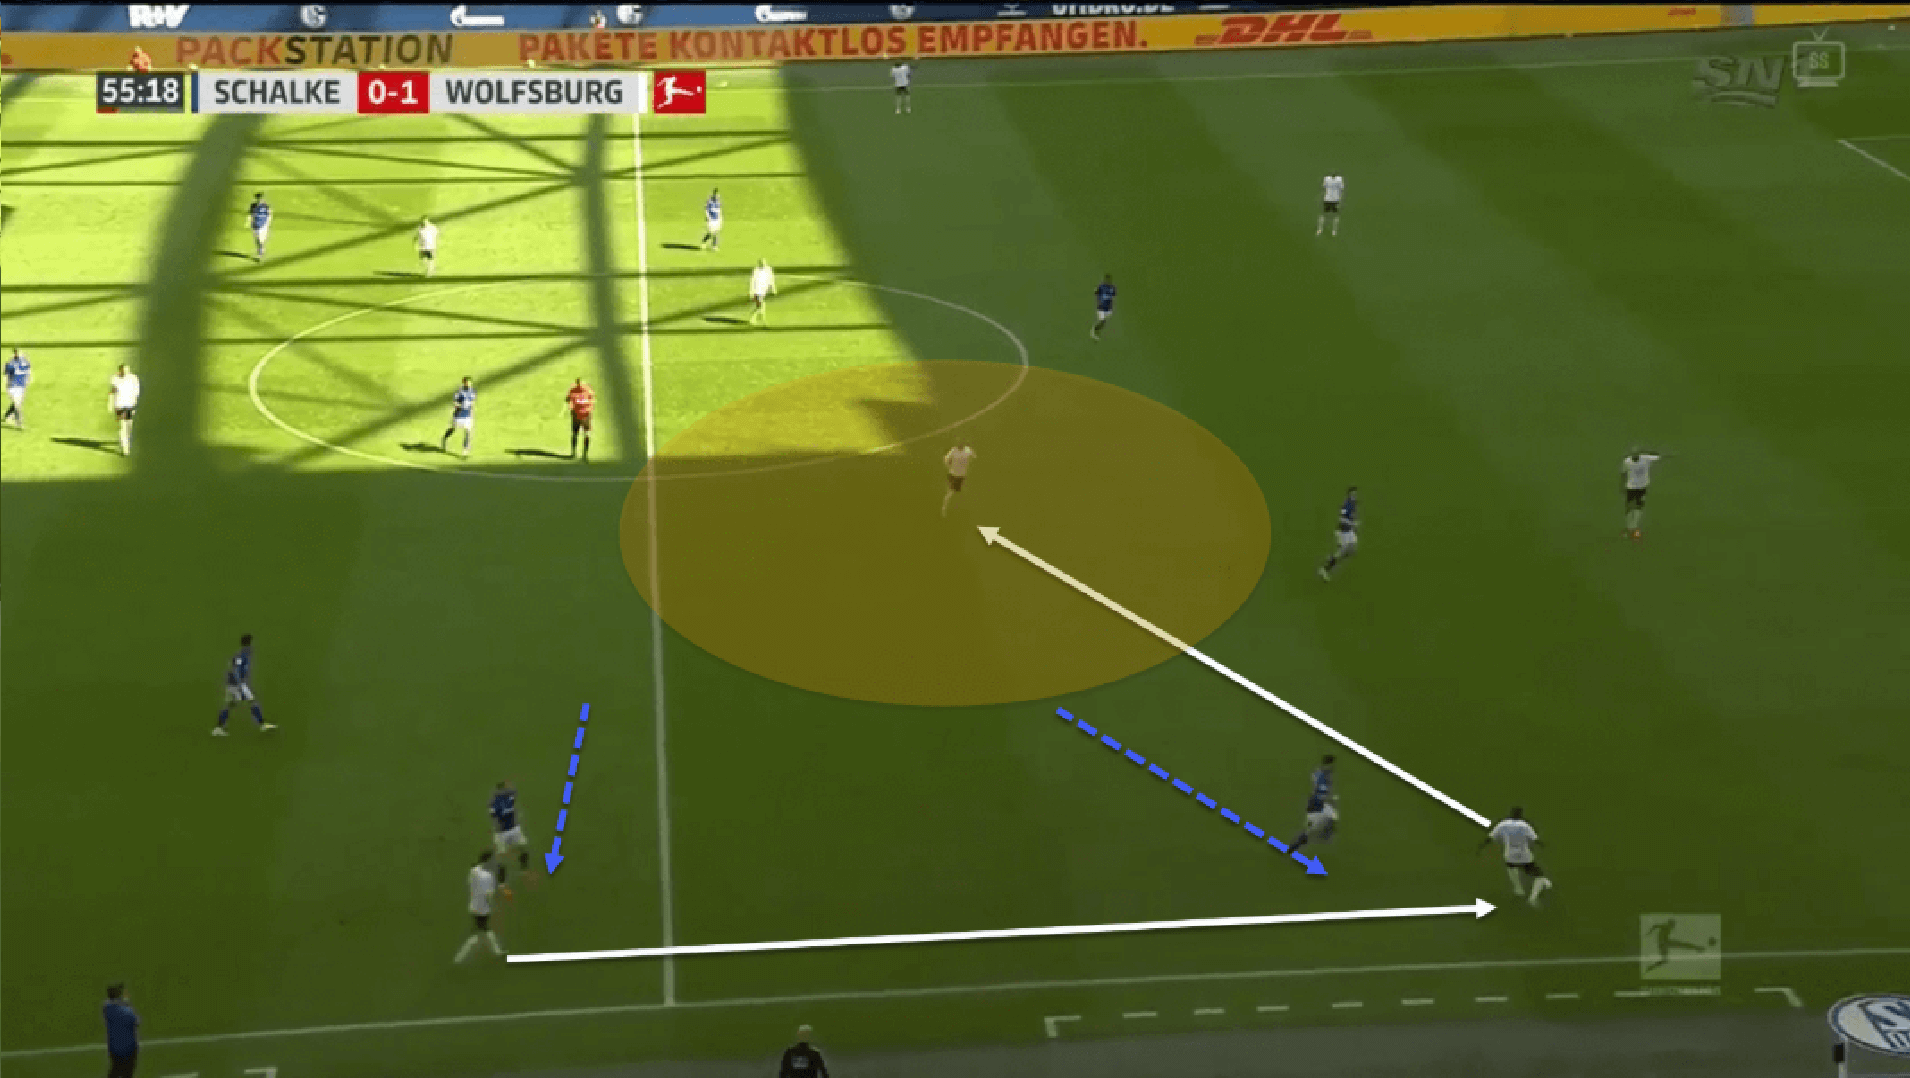 Wolfsburg 2019/20: Dynamic build-up strategies - scout report tactical analysis tactics